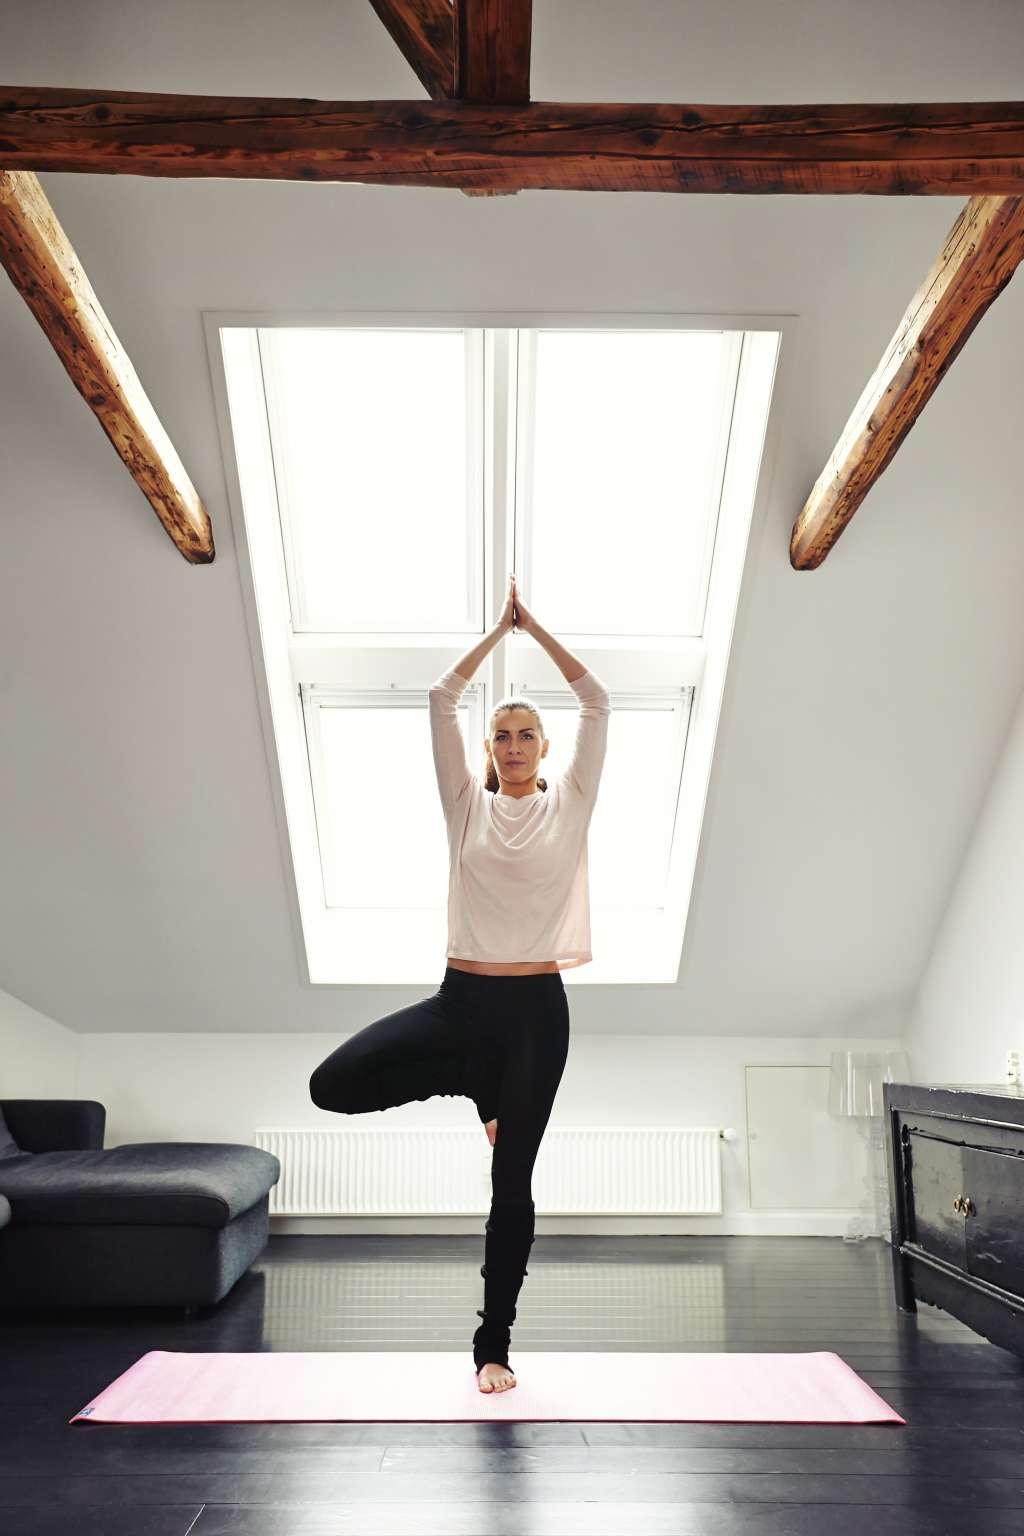 Wellness at Home: Workouts to Do While Indulging Your Netflix Addiction